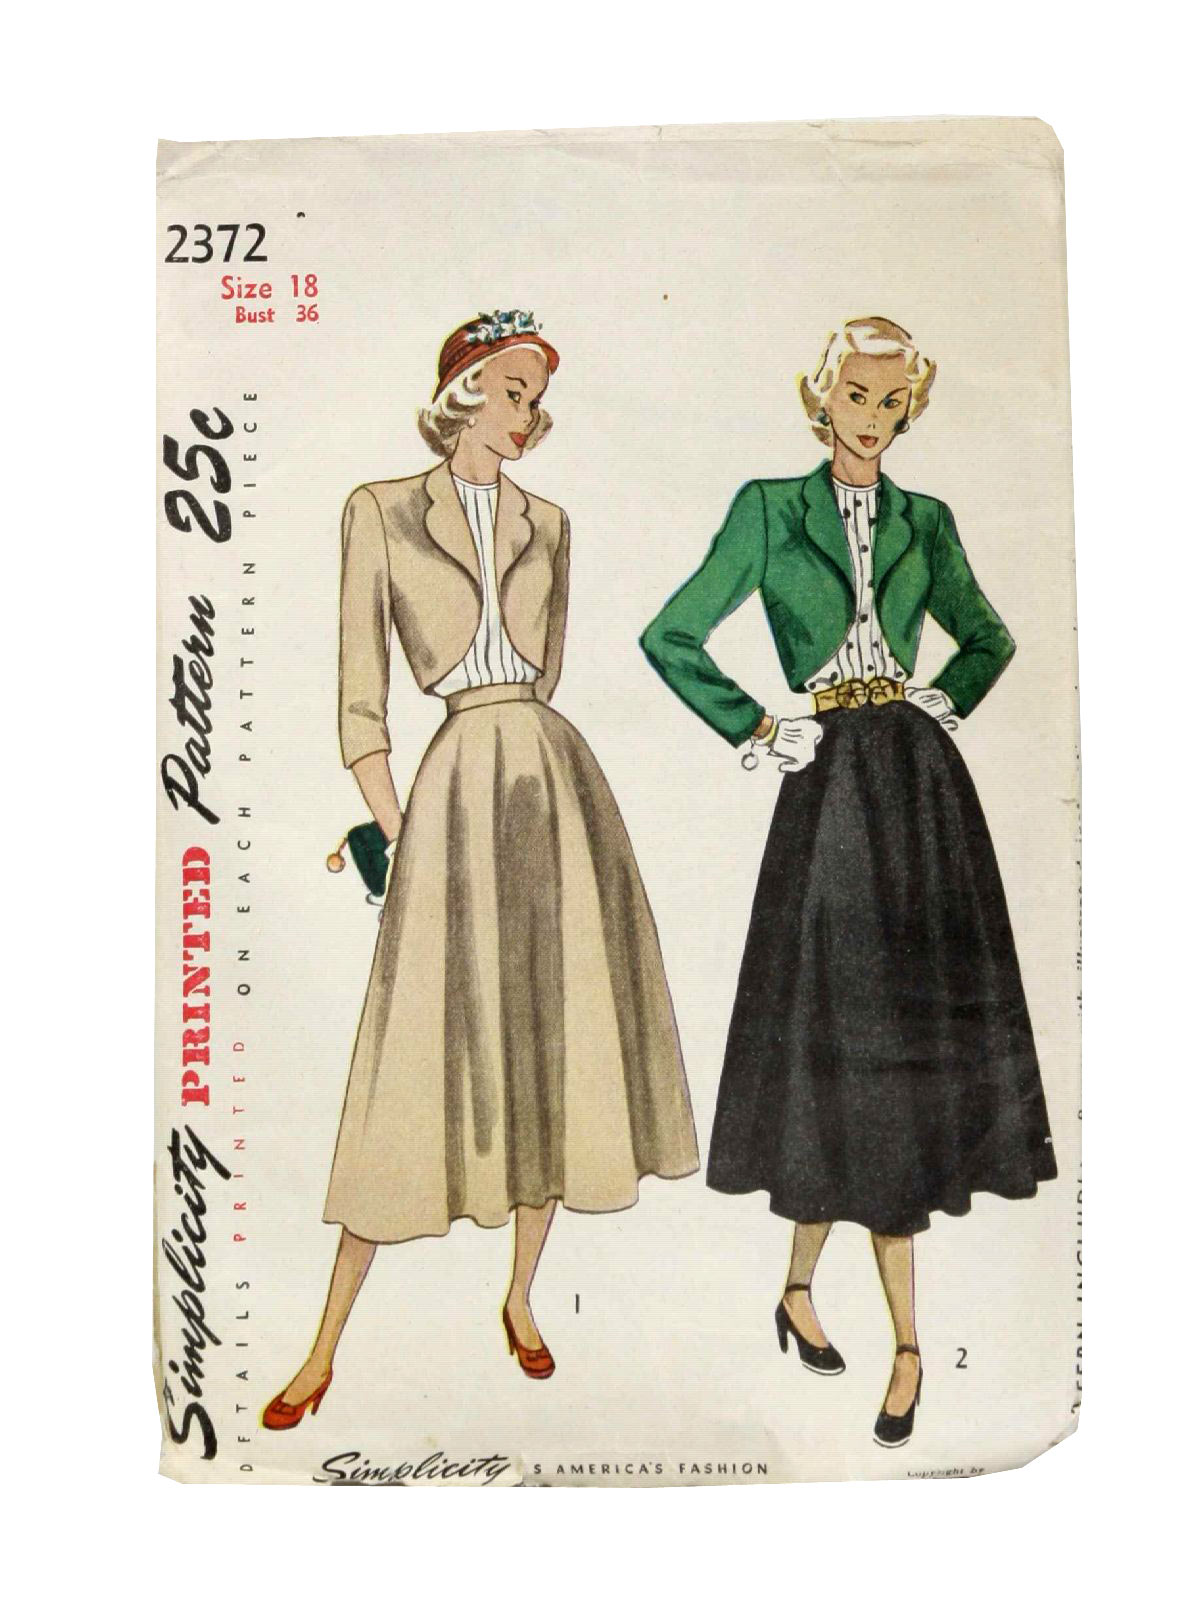 Post War Influence On Womens Fashion In The 1940s | Autos Post